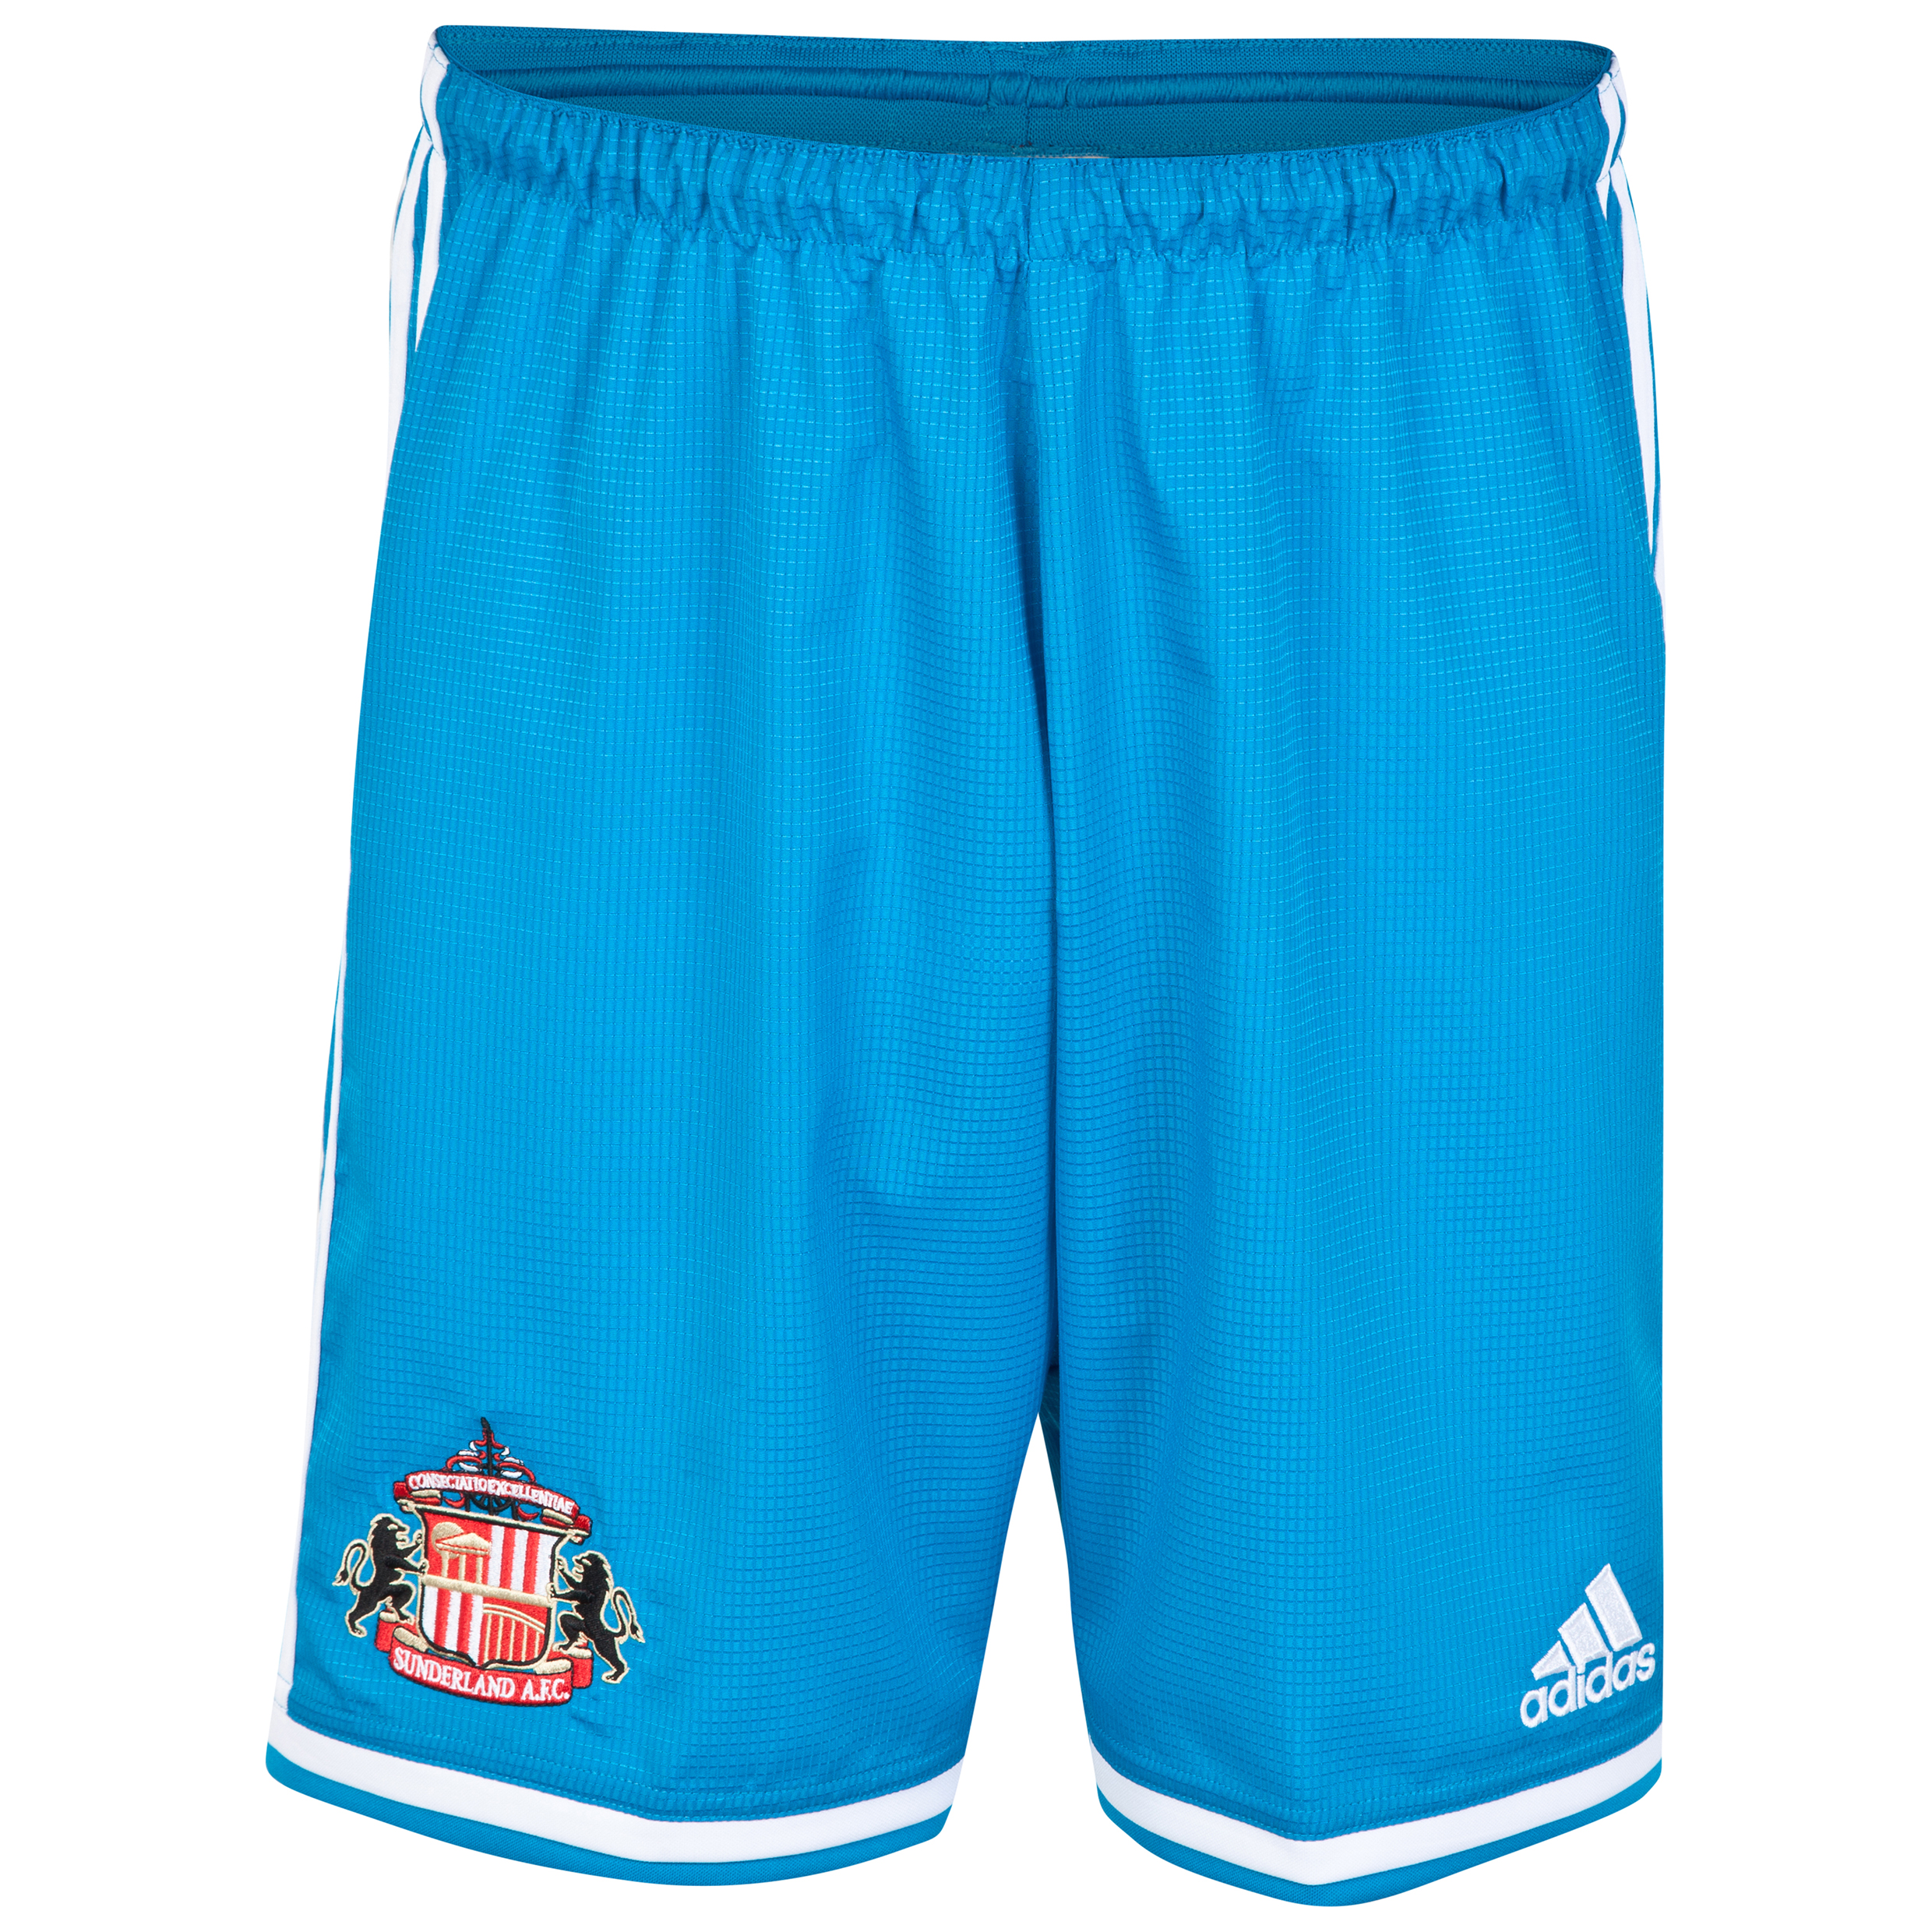 Sunderland Away Short 2014/15 - Junior Lt Blue